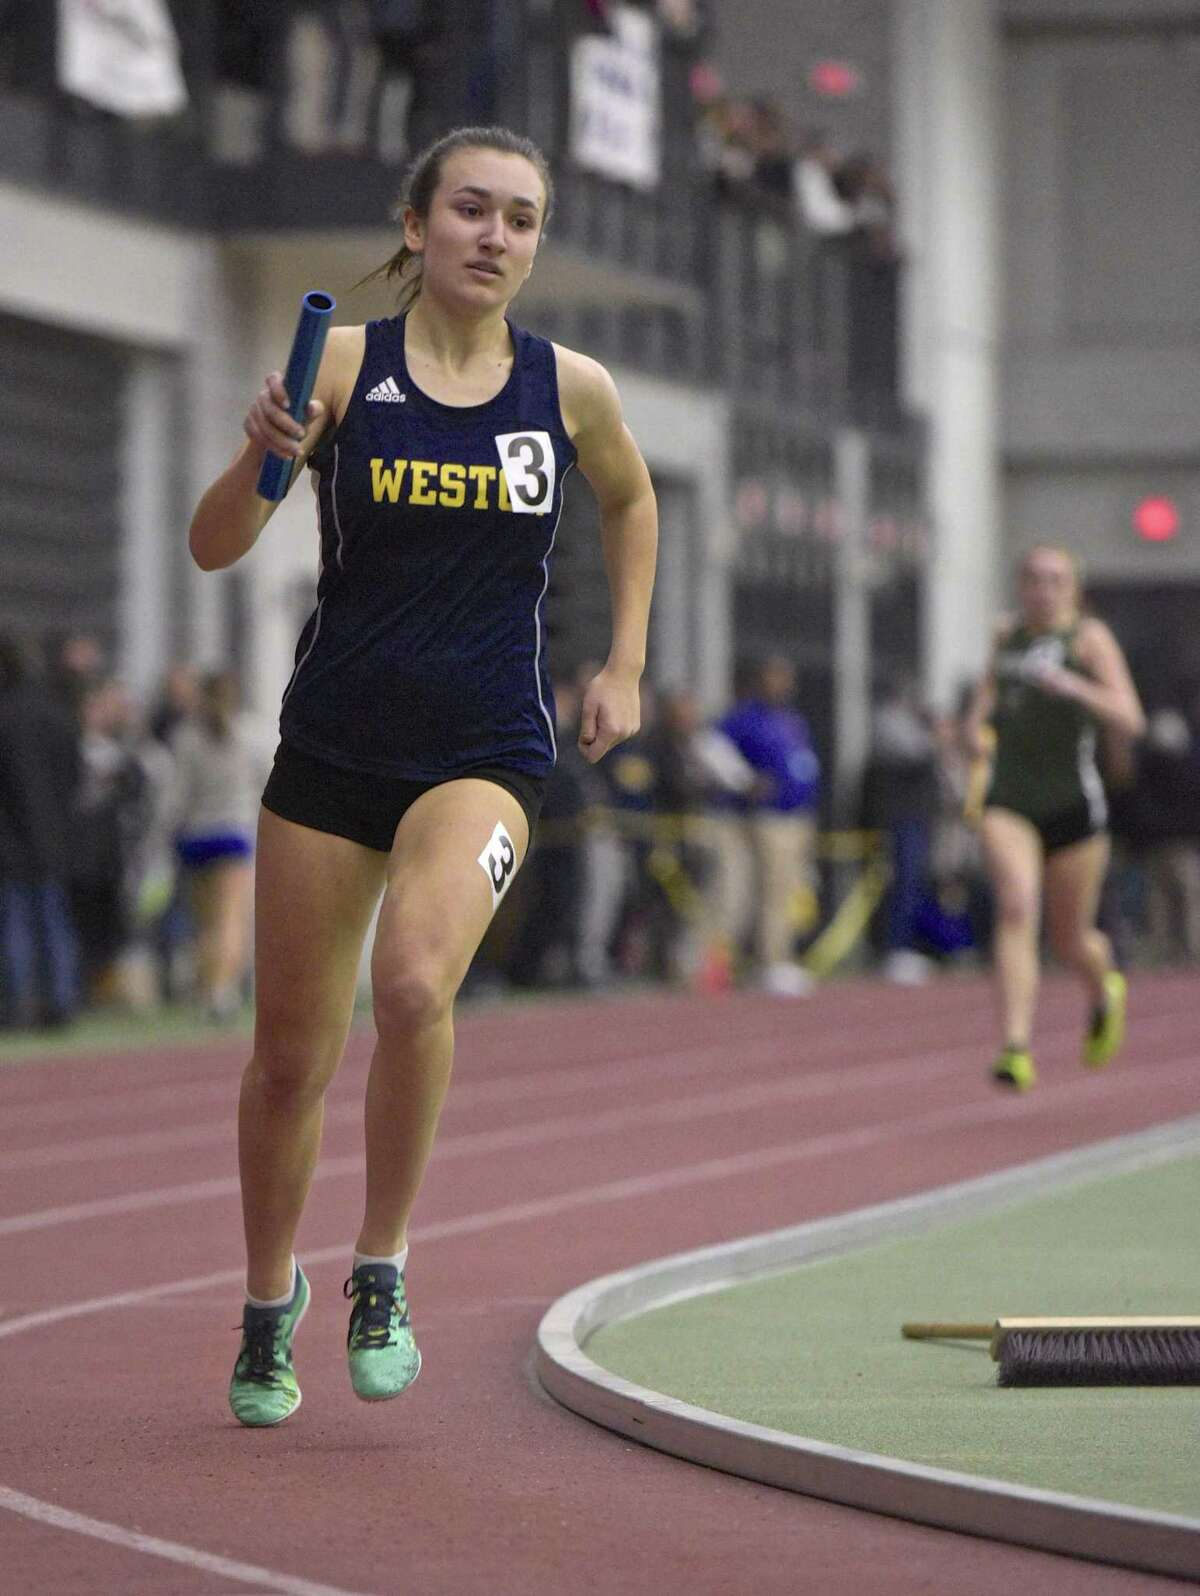 Weston's Michelle Gutowski competes in the 4x800 meter relay in the SWC girls indoor track championship at Floyd Little Athletic Center, New Haven, Conn, on Saturday night, February 3, 2018.